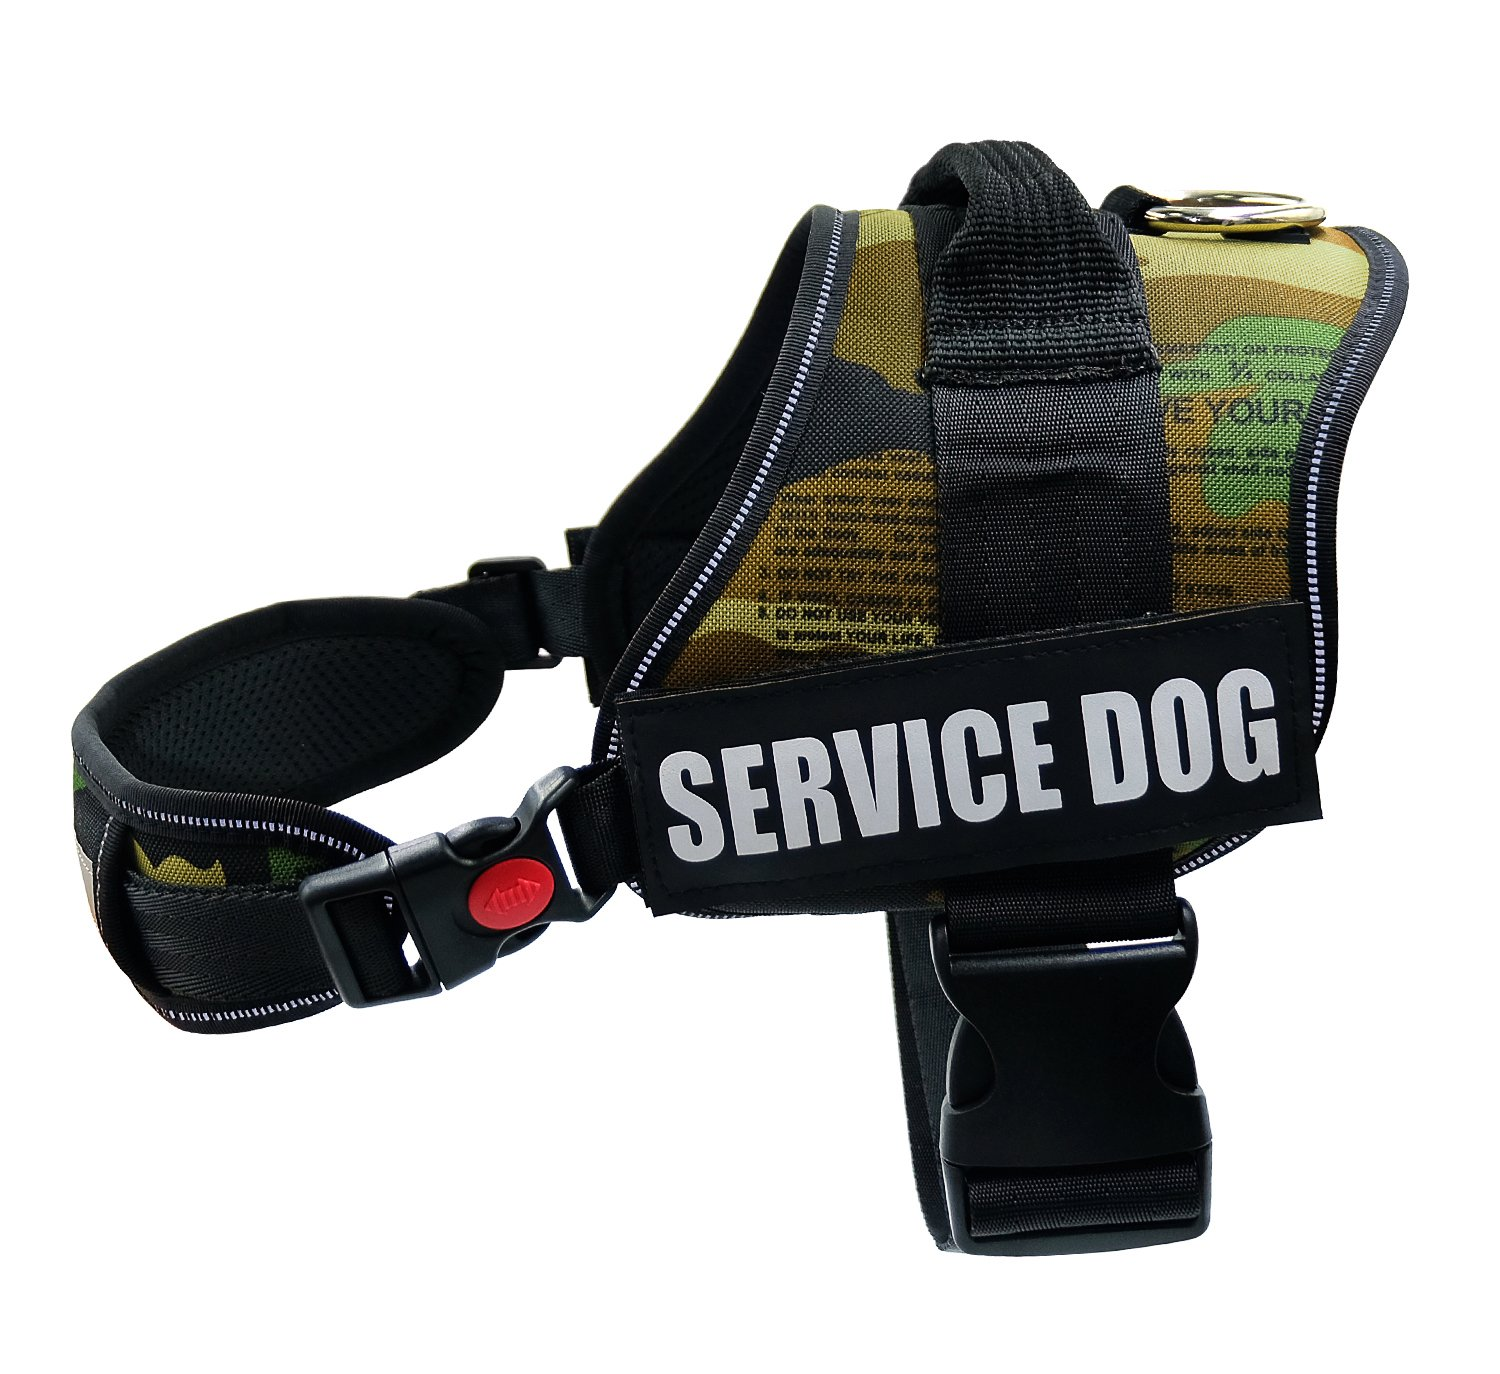 Fairwin Service Vest Dog Harness - Adjustable Nylon Dog Vest with Reflective Patches for Service Dogs Large Medium Small In Training